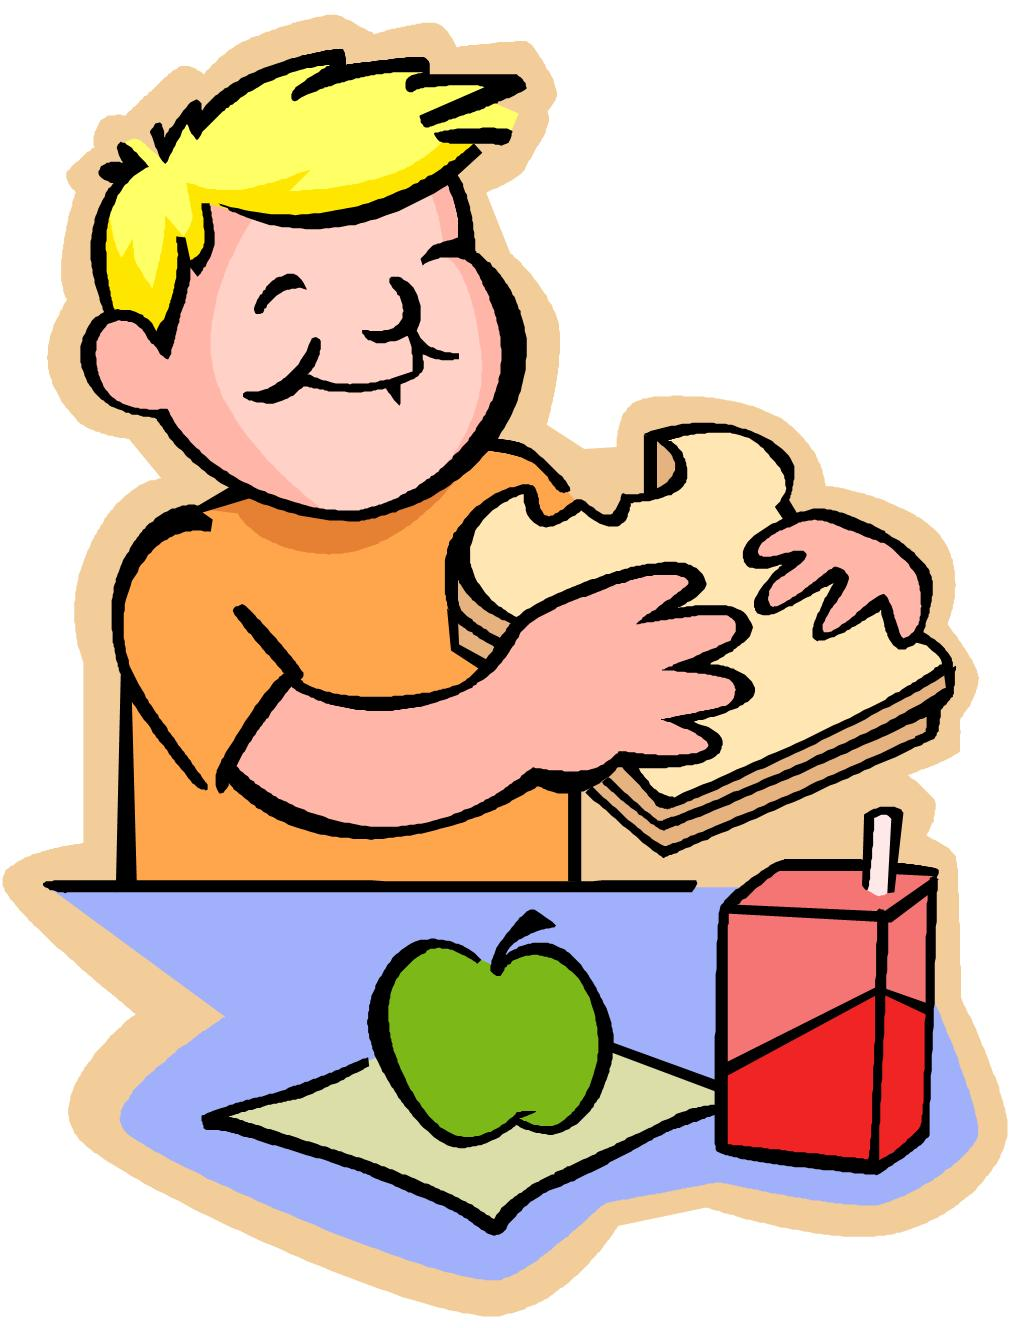 Class Party Clip Art School Health Clip Art Healthy Schools Lets Move